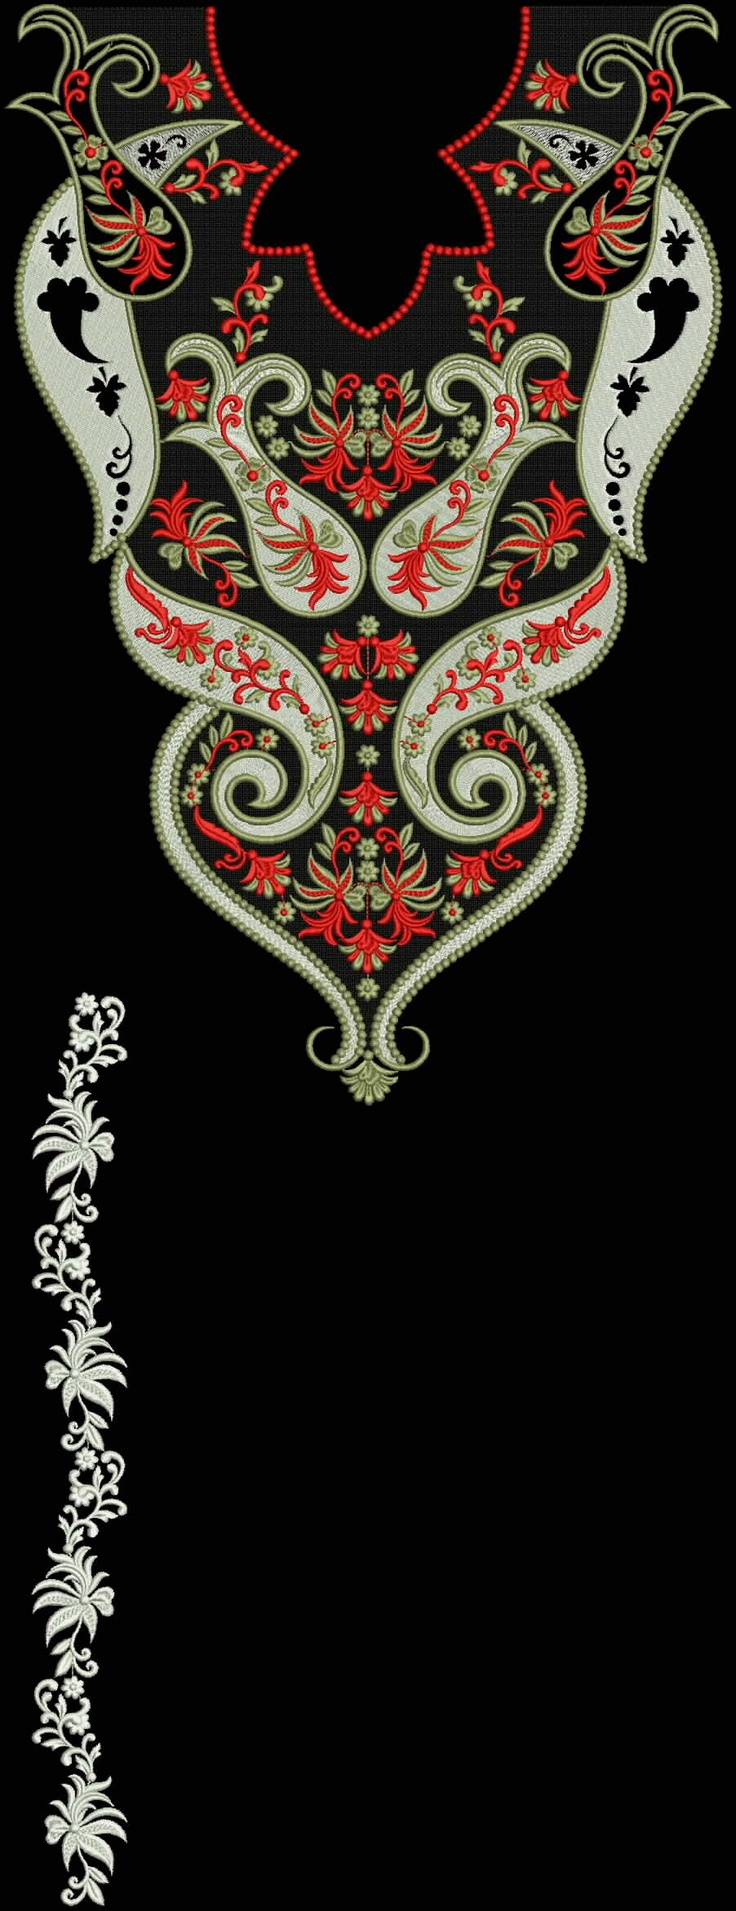 Latest Embroidery Designs For Sale, If U Want Embroidery Designs Plz Contact (Khalid Mahmood, +92-300-9406667) www.embroiderydesignss.blogspot.com Design# Loker13